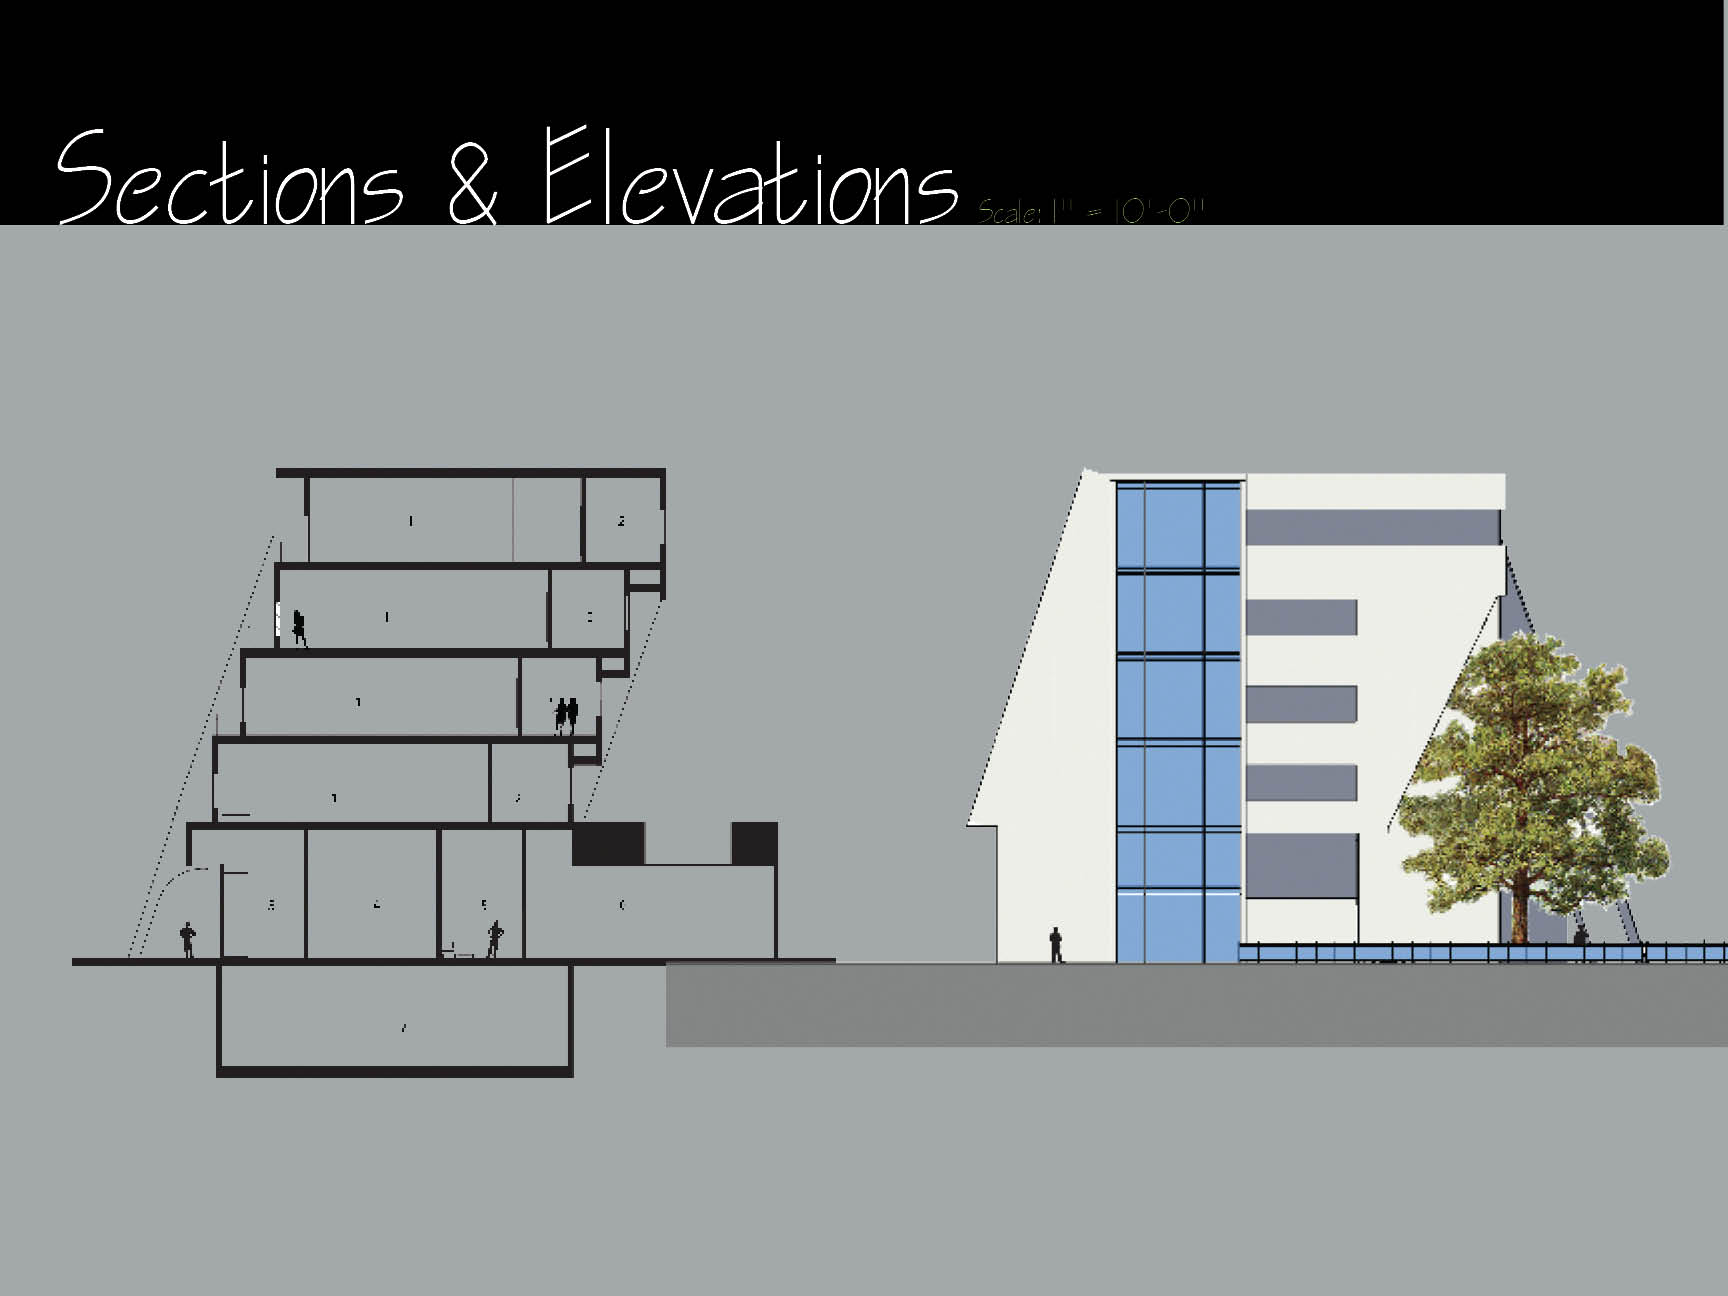 Section & Elevation 2